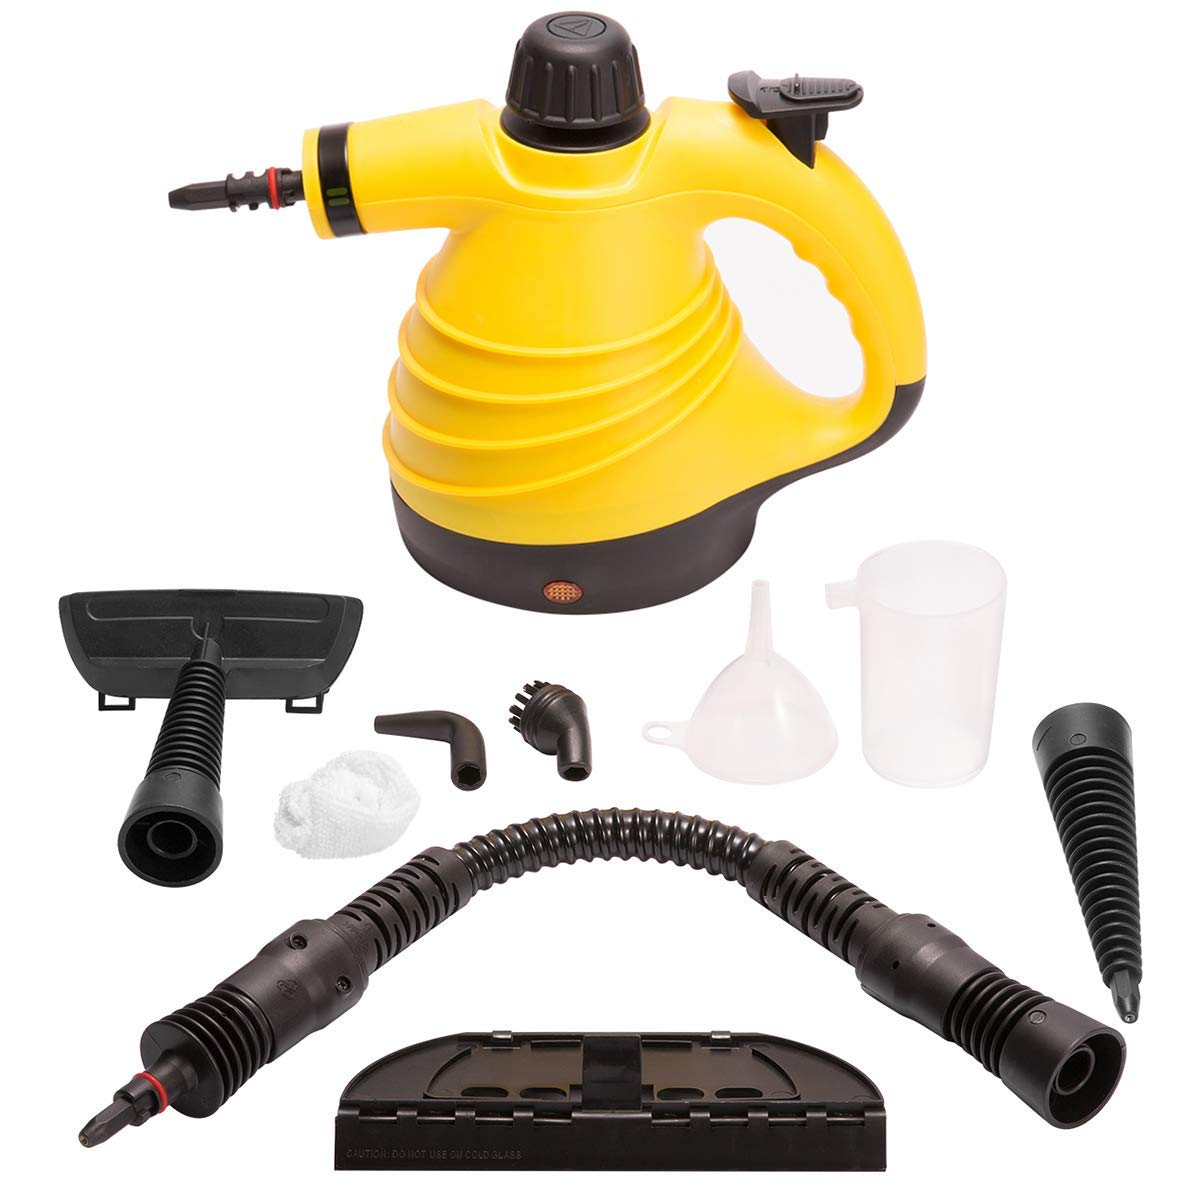 DOEWORKS Handheld Steam Cleaner, Multi-Purpose Pressurized Portable Steamer with 9-Piece Accessory Set for Bathroom, Kitchen, Surfaces, Carpet, Car Seats and Floor